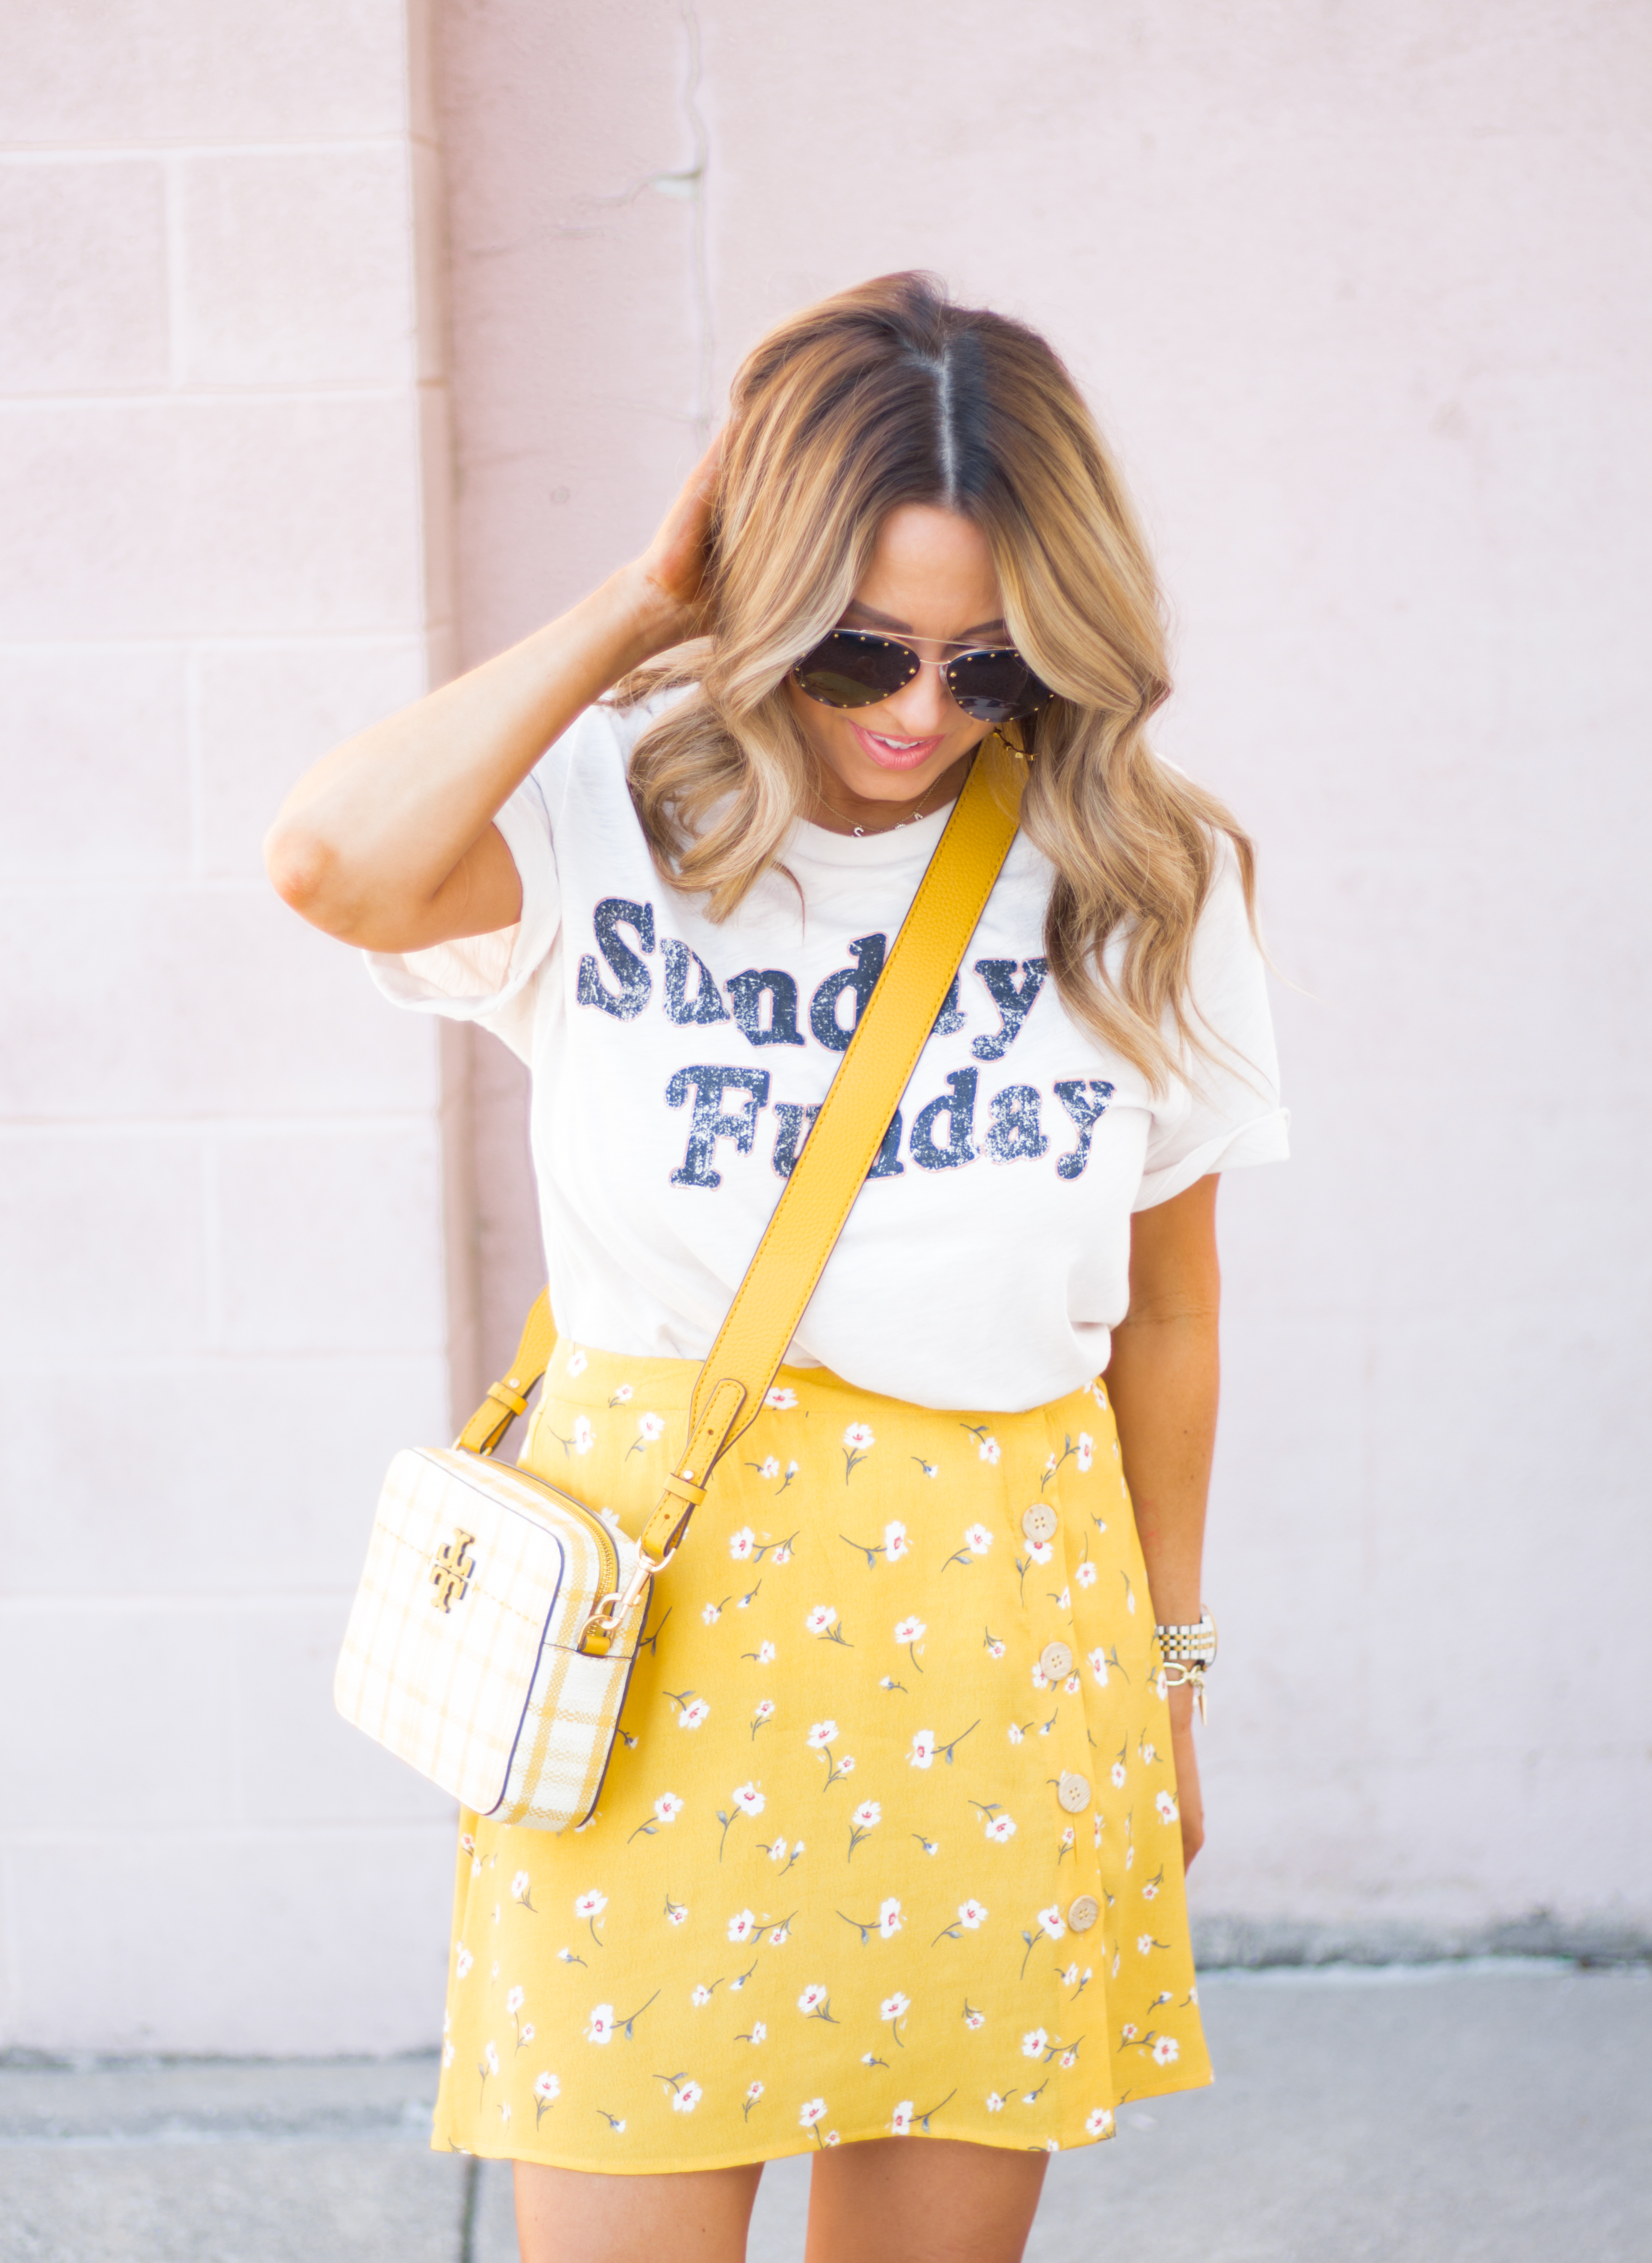 Sunday Funday-Graphic Tee-Floral Skirt-Mini Skirt-Spring Fashion-Spring Style-Tory Burch Purse-Quay Sunglasses-Tan Wedges-Espadrilles-Yellow-Colorful Style-Sabby Style-Women's Fashion-Omaha Blog-Omaha Blogger-6